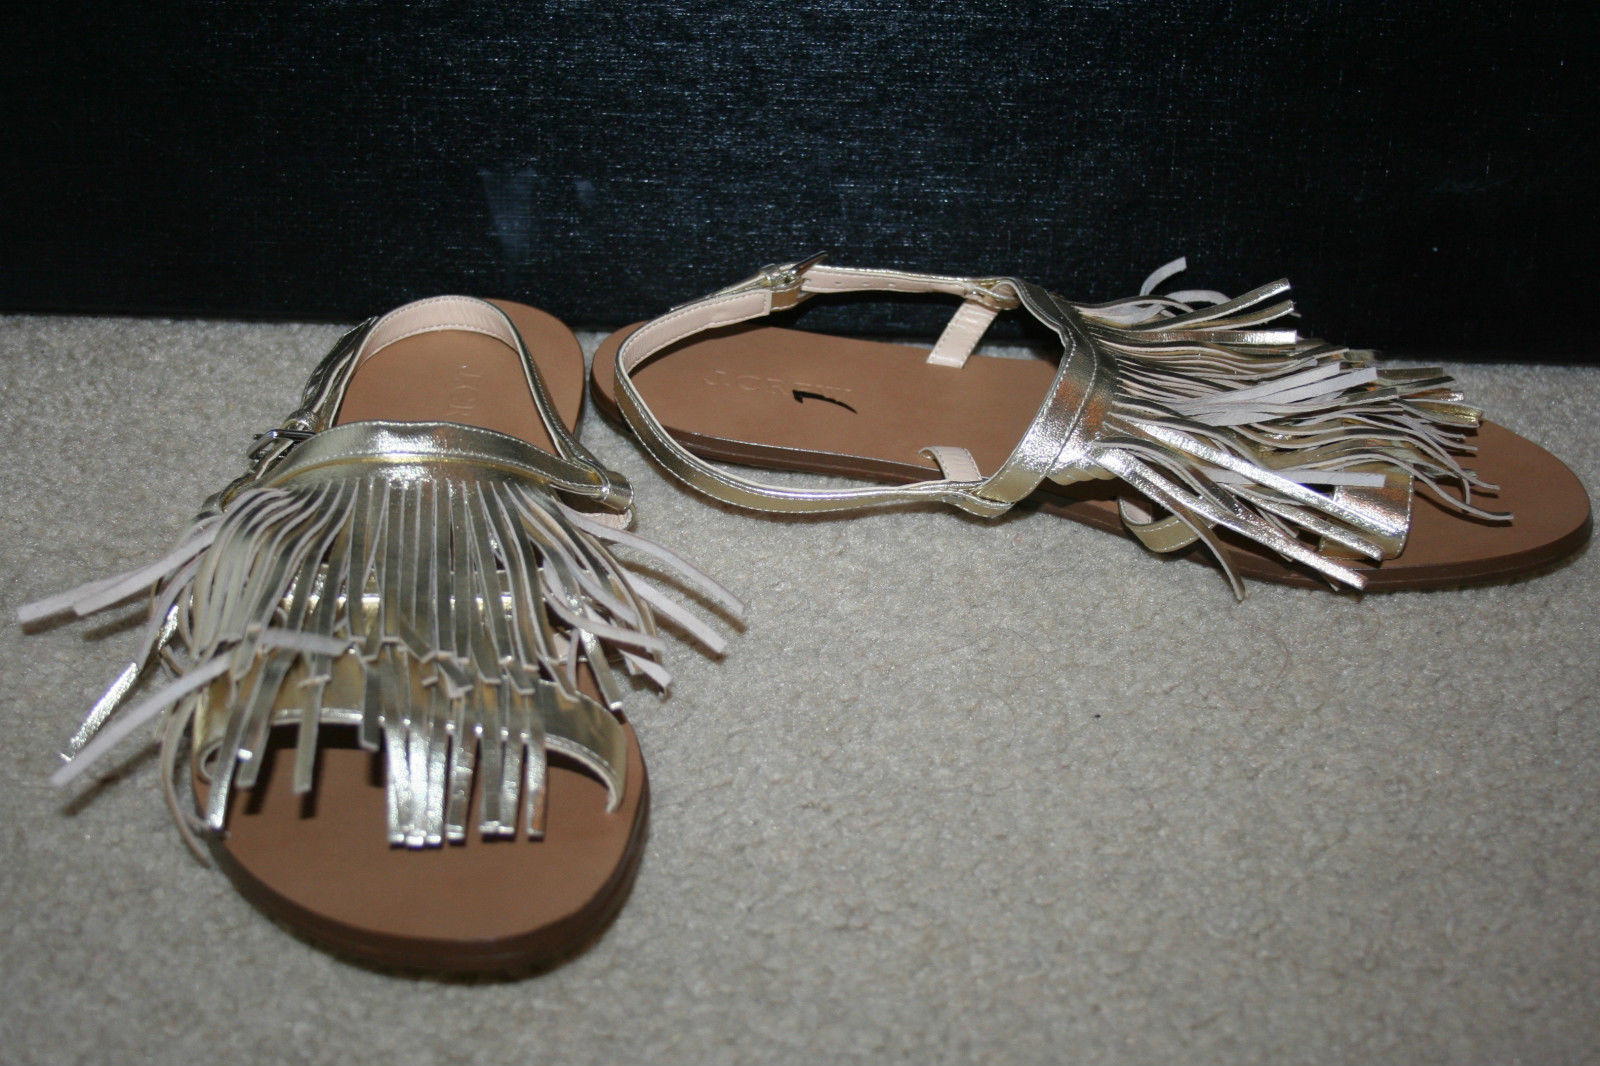 J.Crew Fringe Slingback Sandalo Size 6 M M M and 42 similar items 41768c